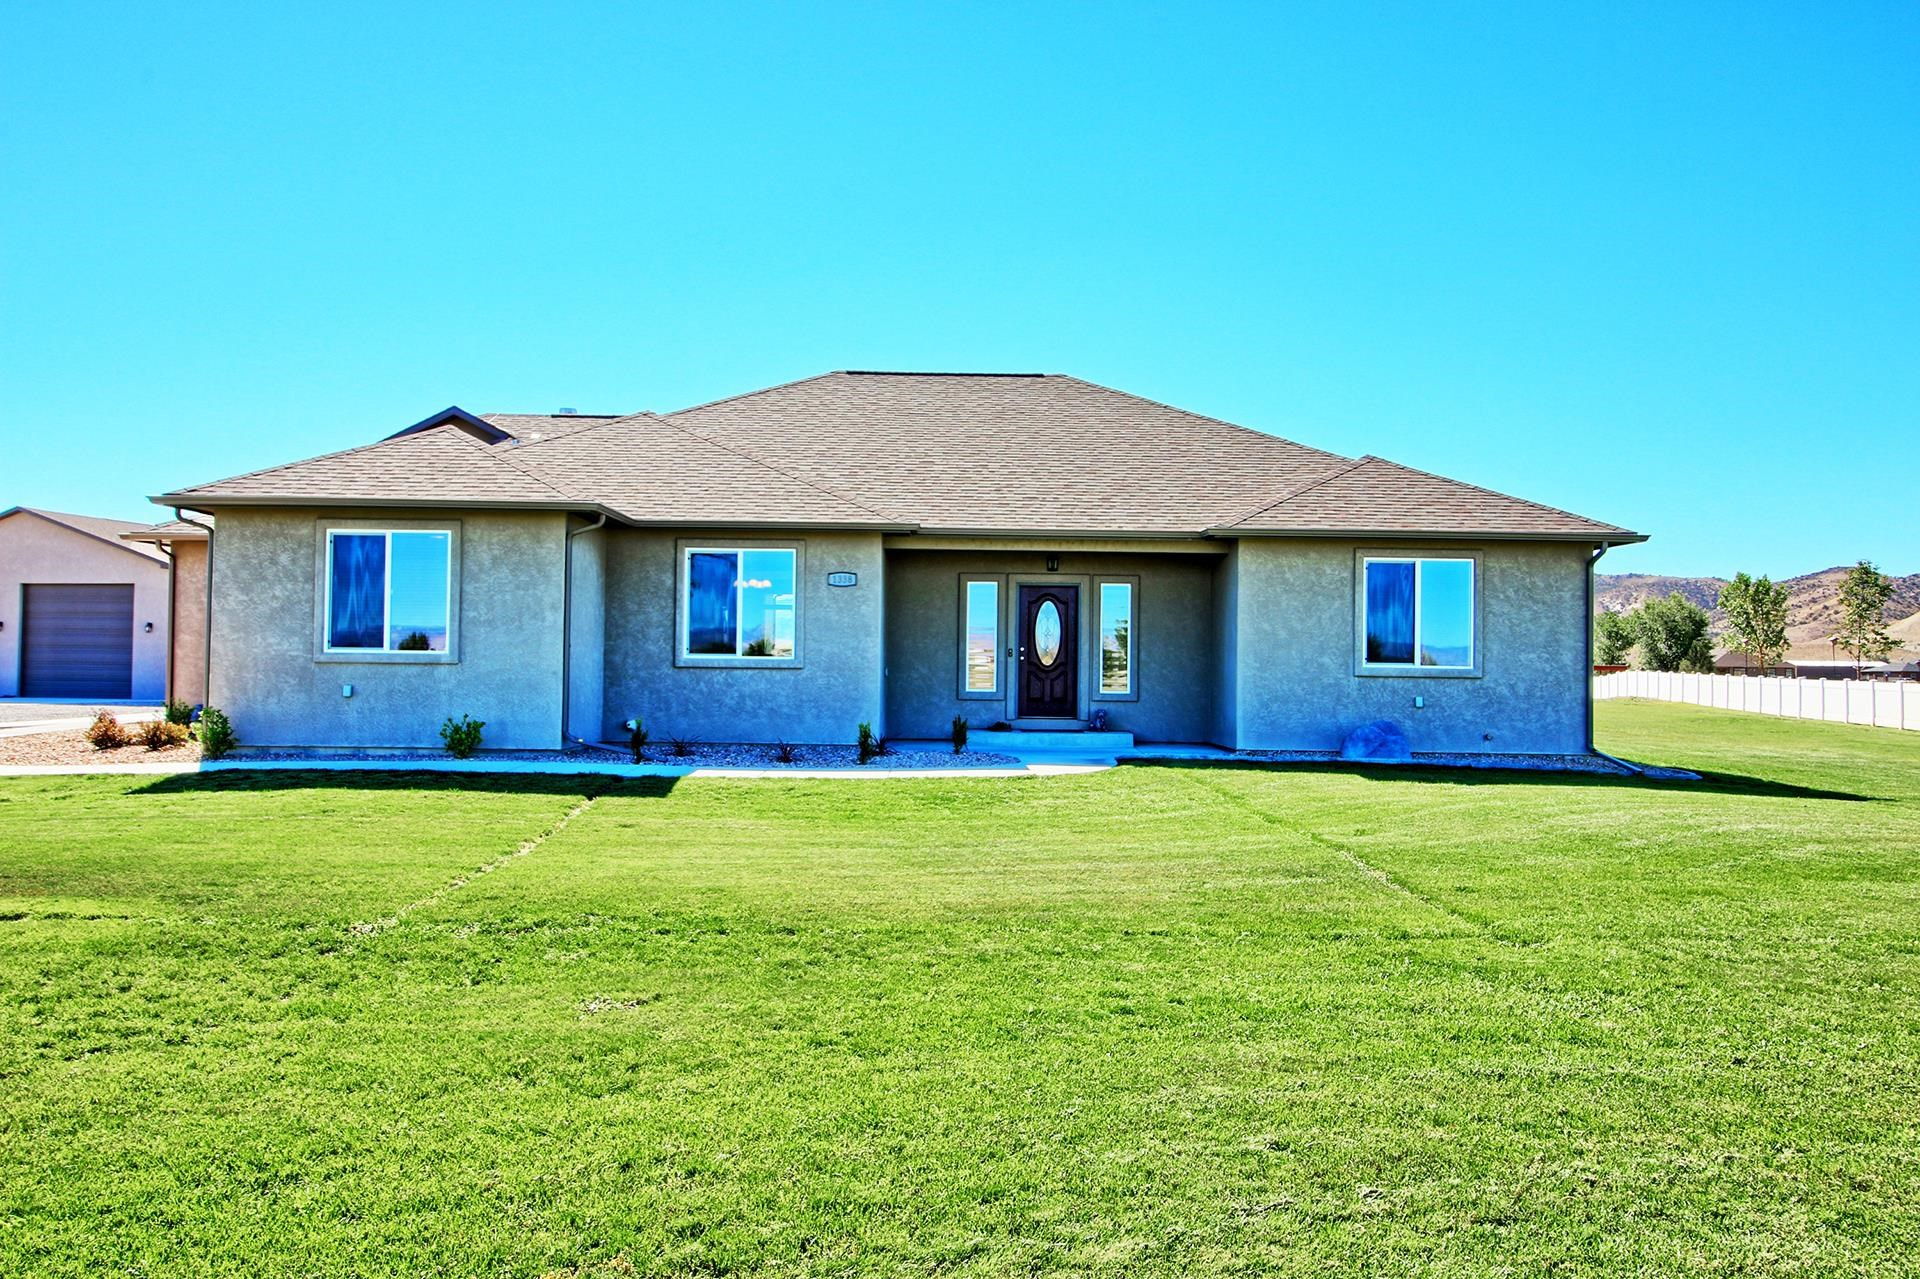 Looking for small acreage that allows for some elbow room with a view plus a shop? Search no more! This beautiful, low maintenance, open concept ranch style stucco home with a split bedroom design is situated perfectly on just shy of 2 irrigated acres with an oversized 4 car attached garage in addition to the 40x40 shop! This custom built 3-bedroom, 2-bathroom home is 2087 square foot features an open living room with vaulted ceiling and a pellet stove, beautiful kitchen with a breakfast bar, fabulous master bedroom with his and hers walk in closets and a tiled 5-piece master bath, and so much more! Come fall in love with what this home truly has to offer!